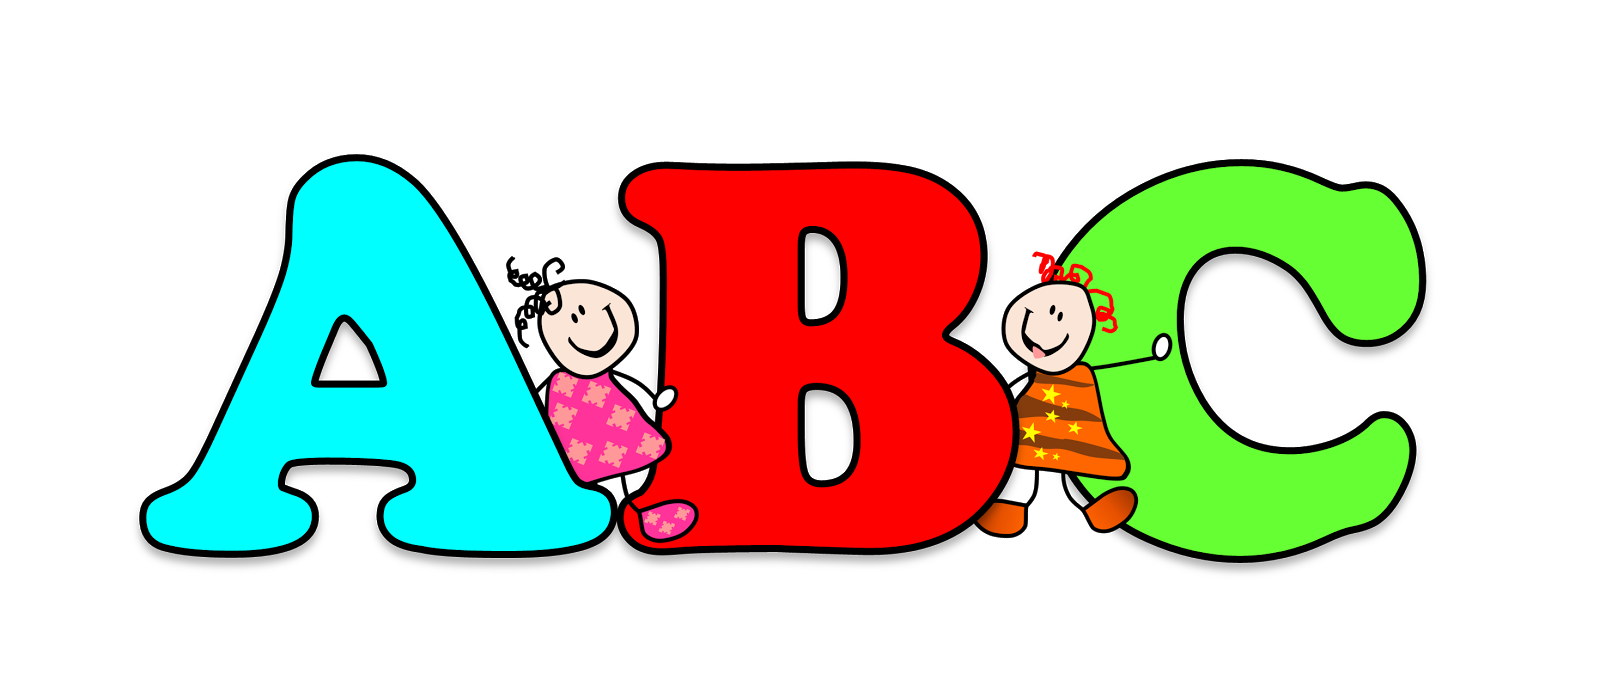 Abc clipart for kids picture library stock Free Abc Clipart Pictures - Clipartix picture library stock